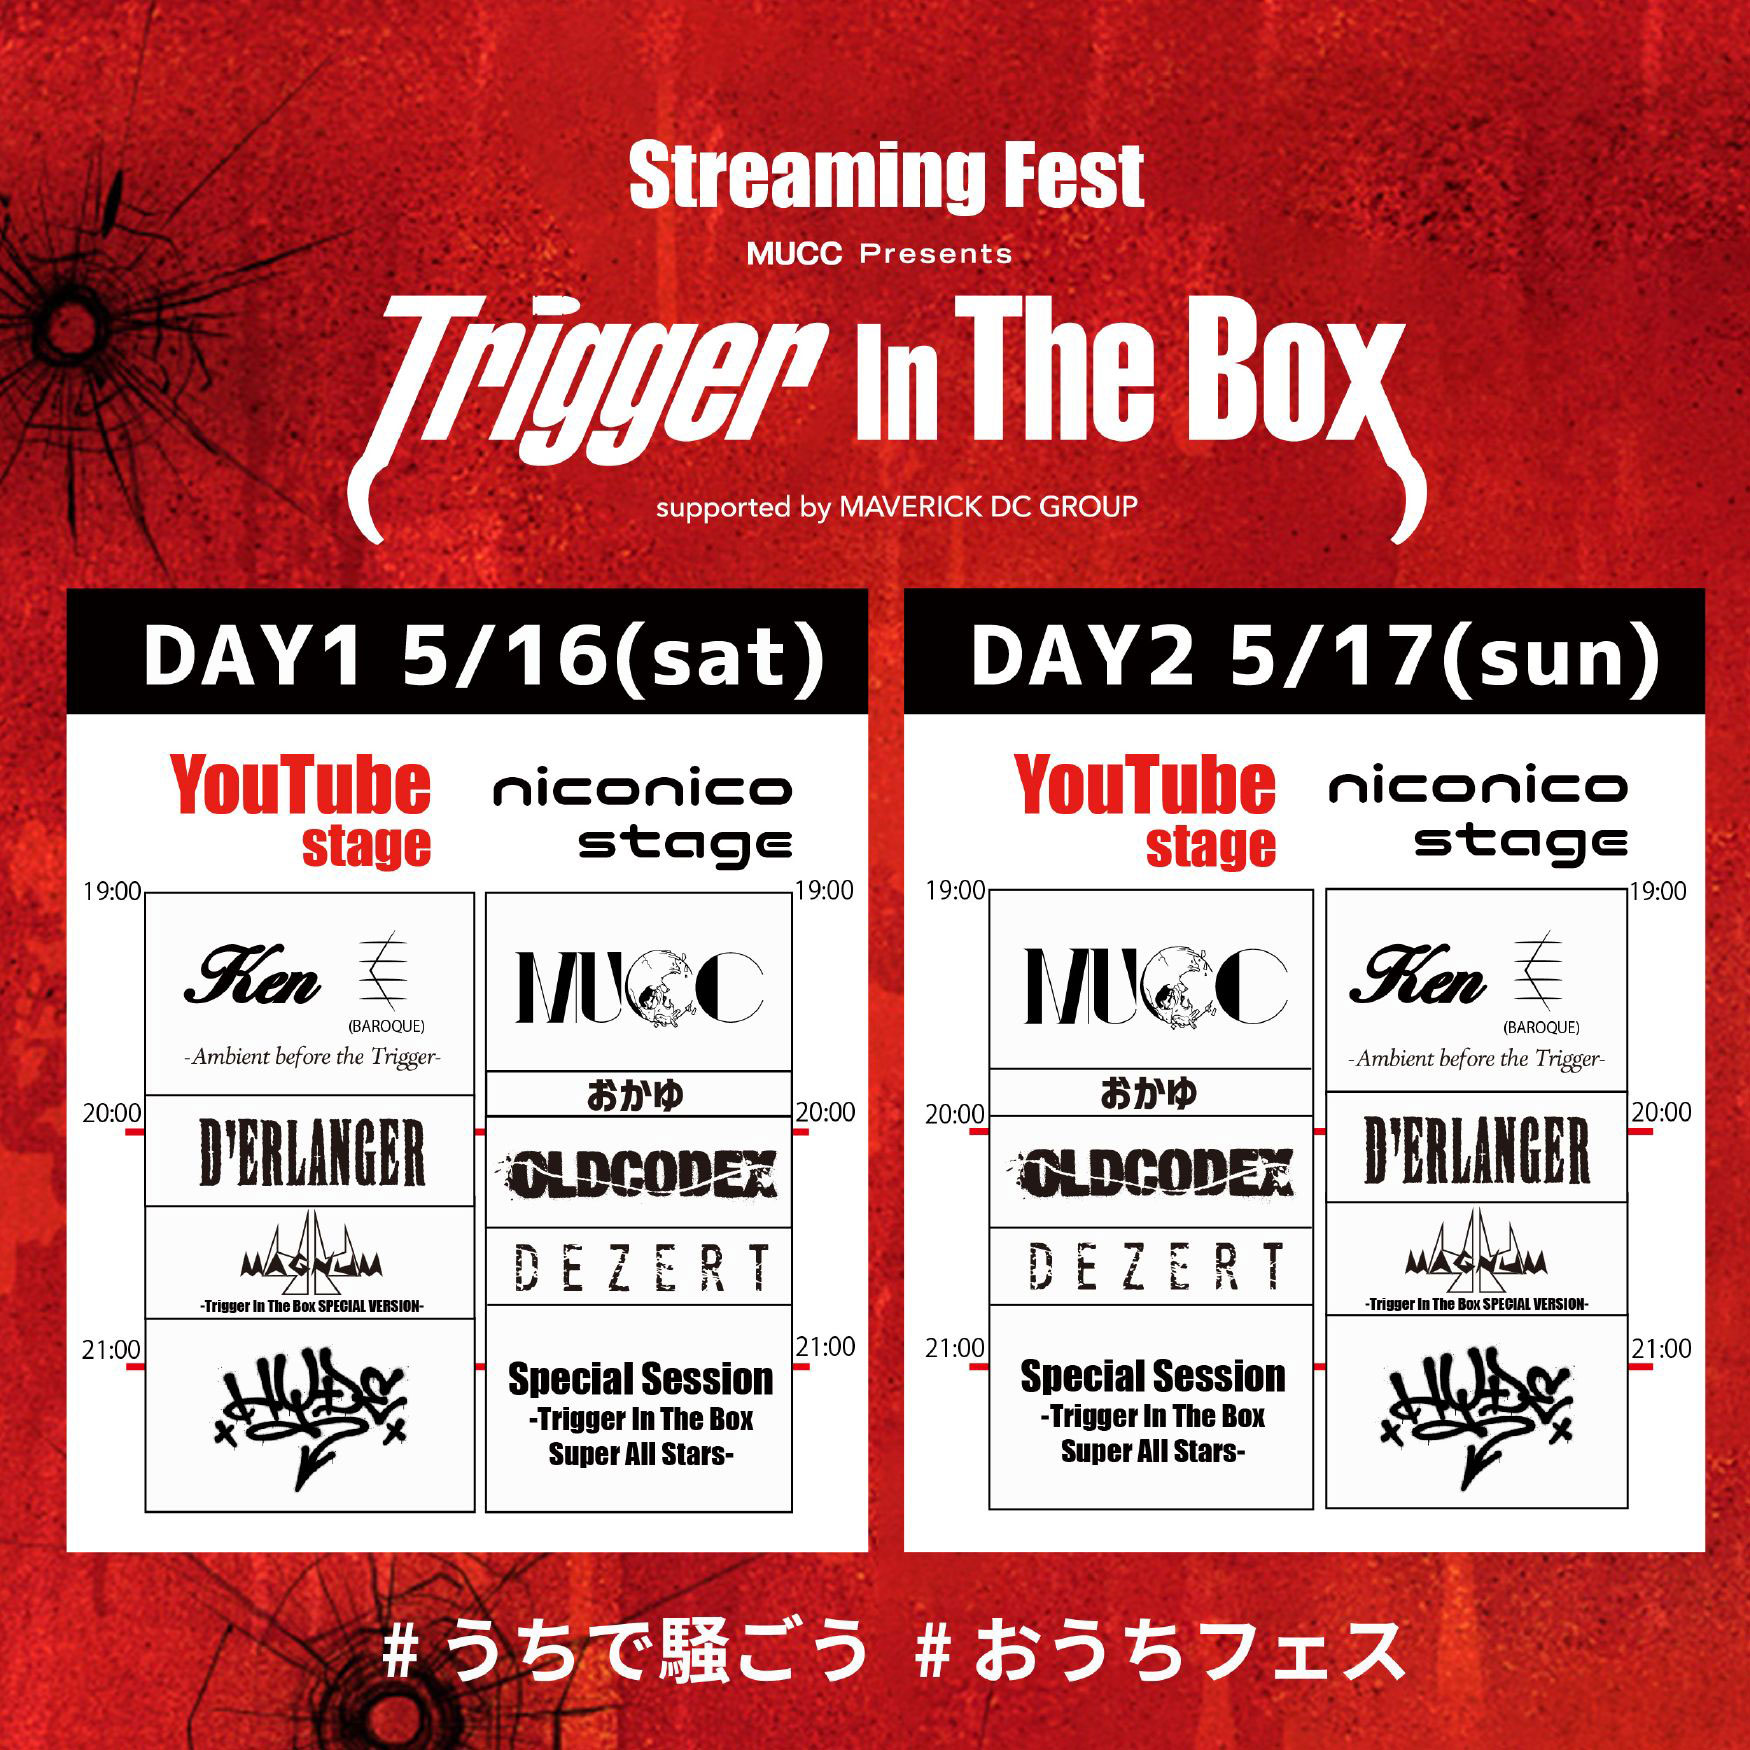 Streaming Fest MUCC Presents『Trigger In The Box』タイムテーブル